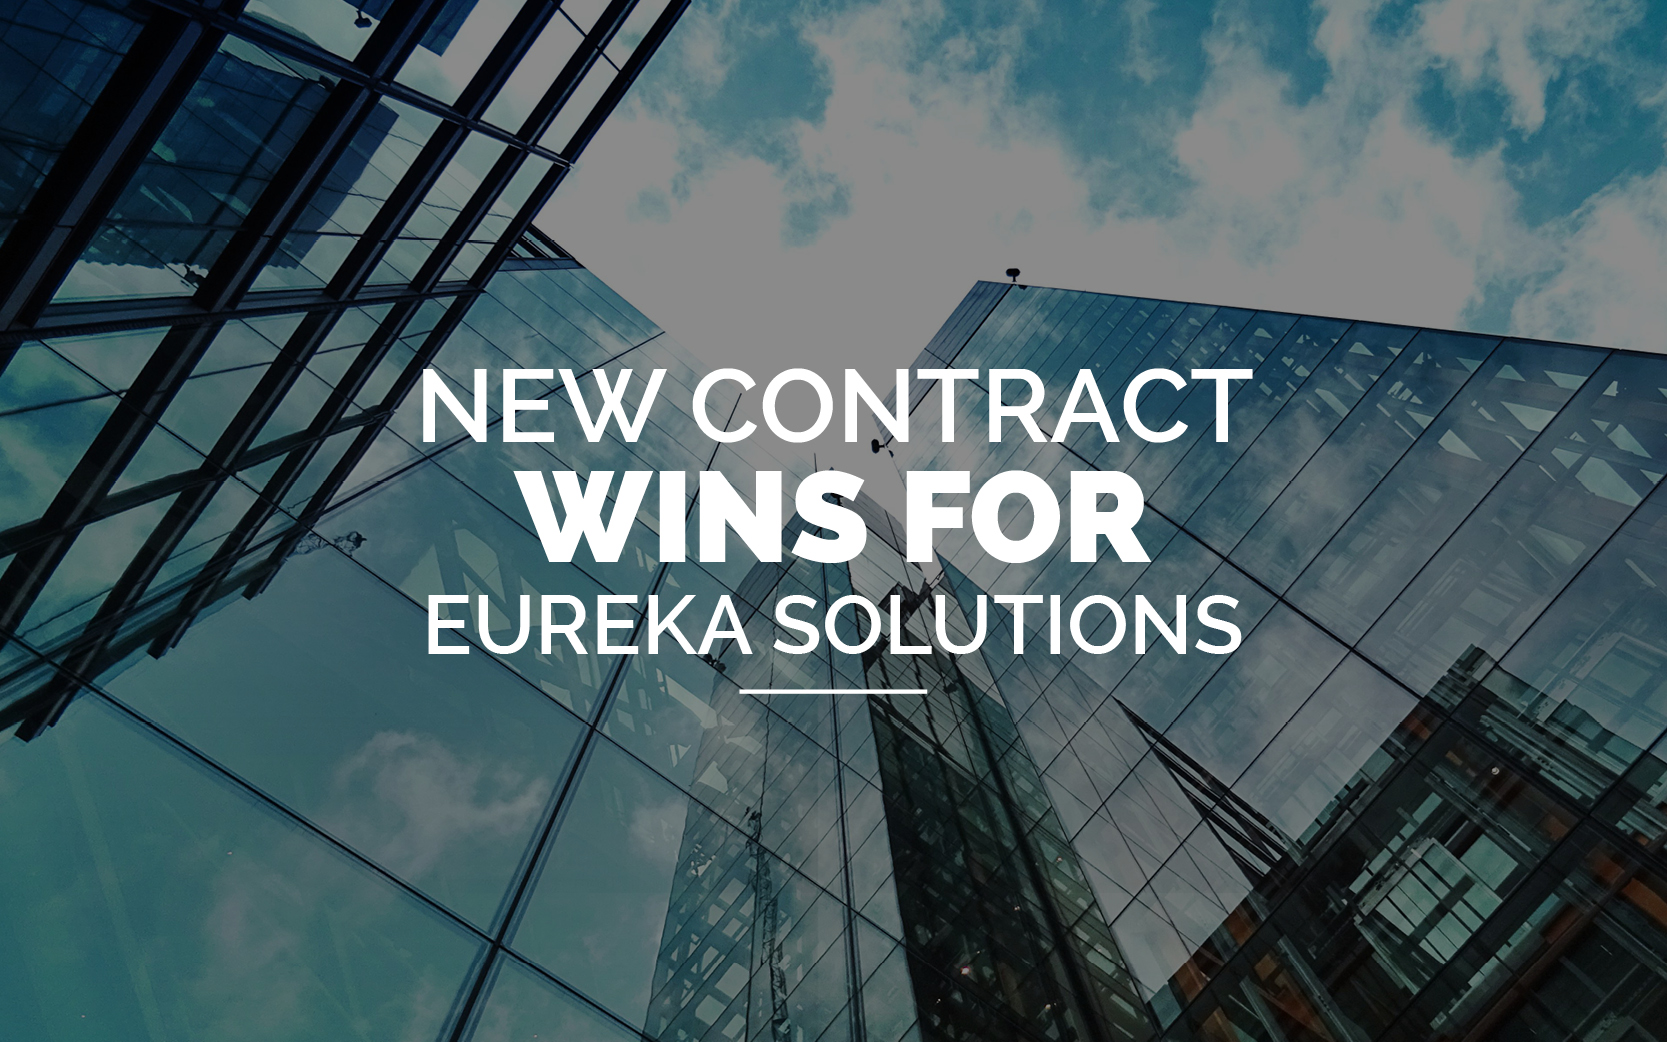 New contract wins for Eureka Solutions